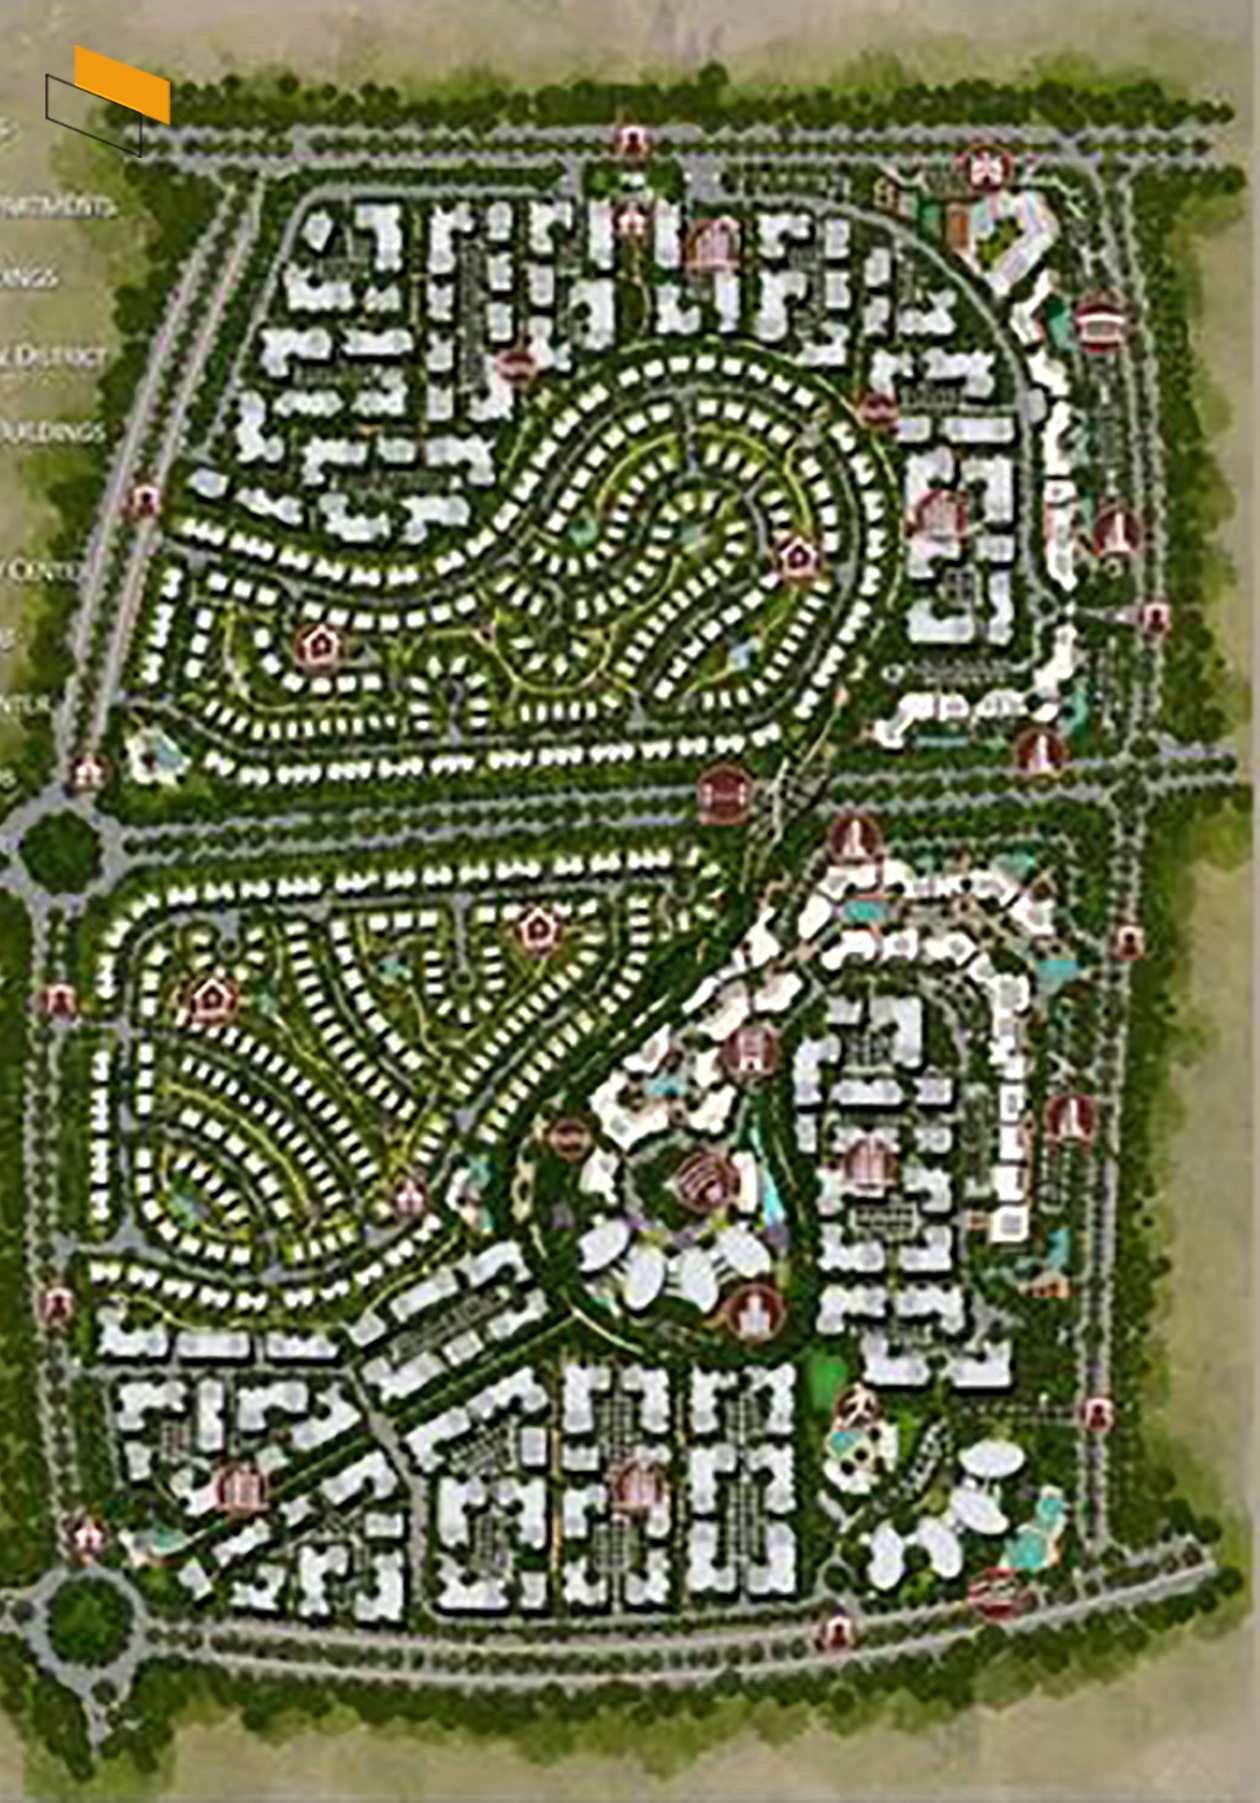 Il Bosco - Master plan image - Flash property                                                style=